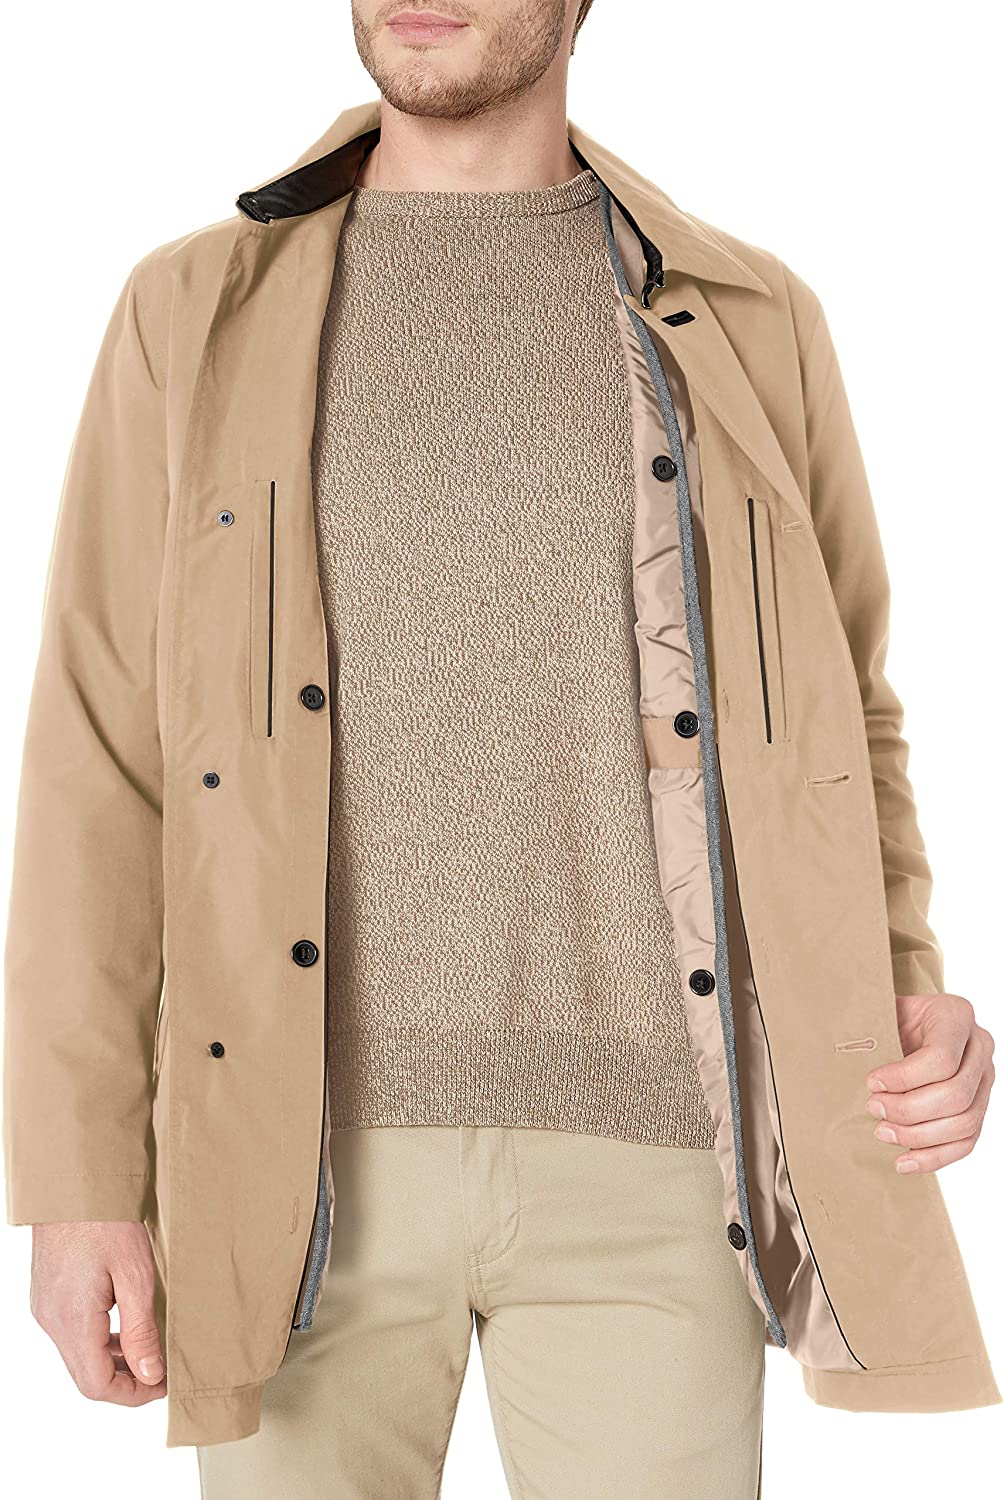 Cole Haan Signature Men's 2-in-1 Car Coat with Removable Lining